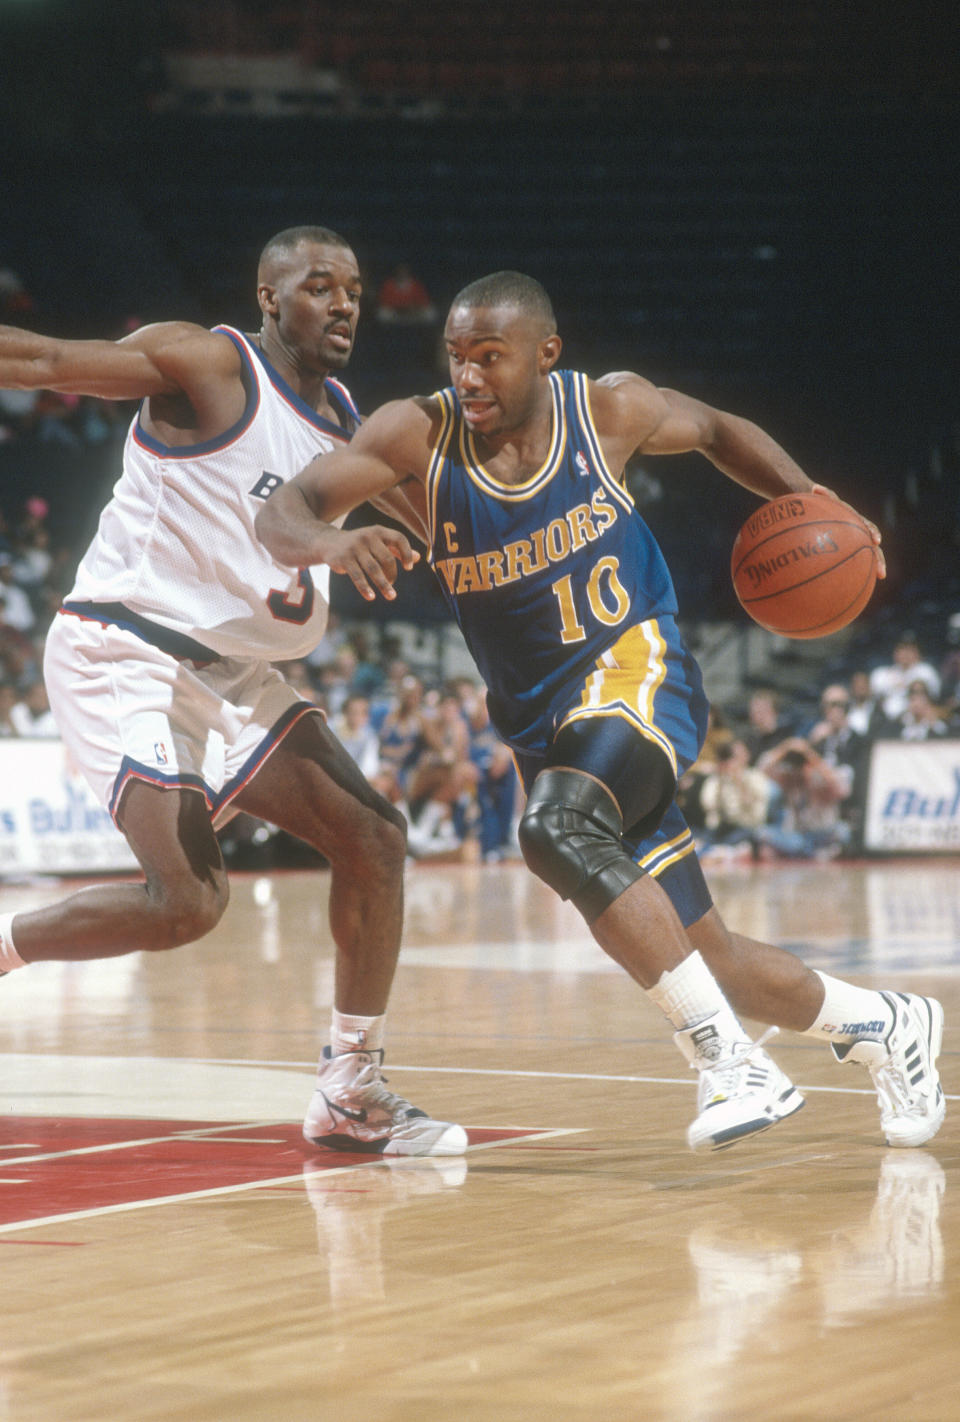 Tim Hardaway drives to the hoop in 1990. (Photo by Focus on Sport/Getty Images)